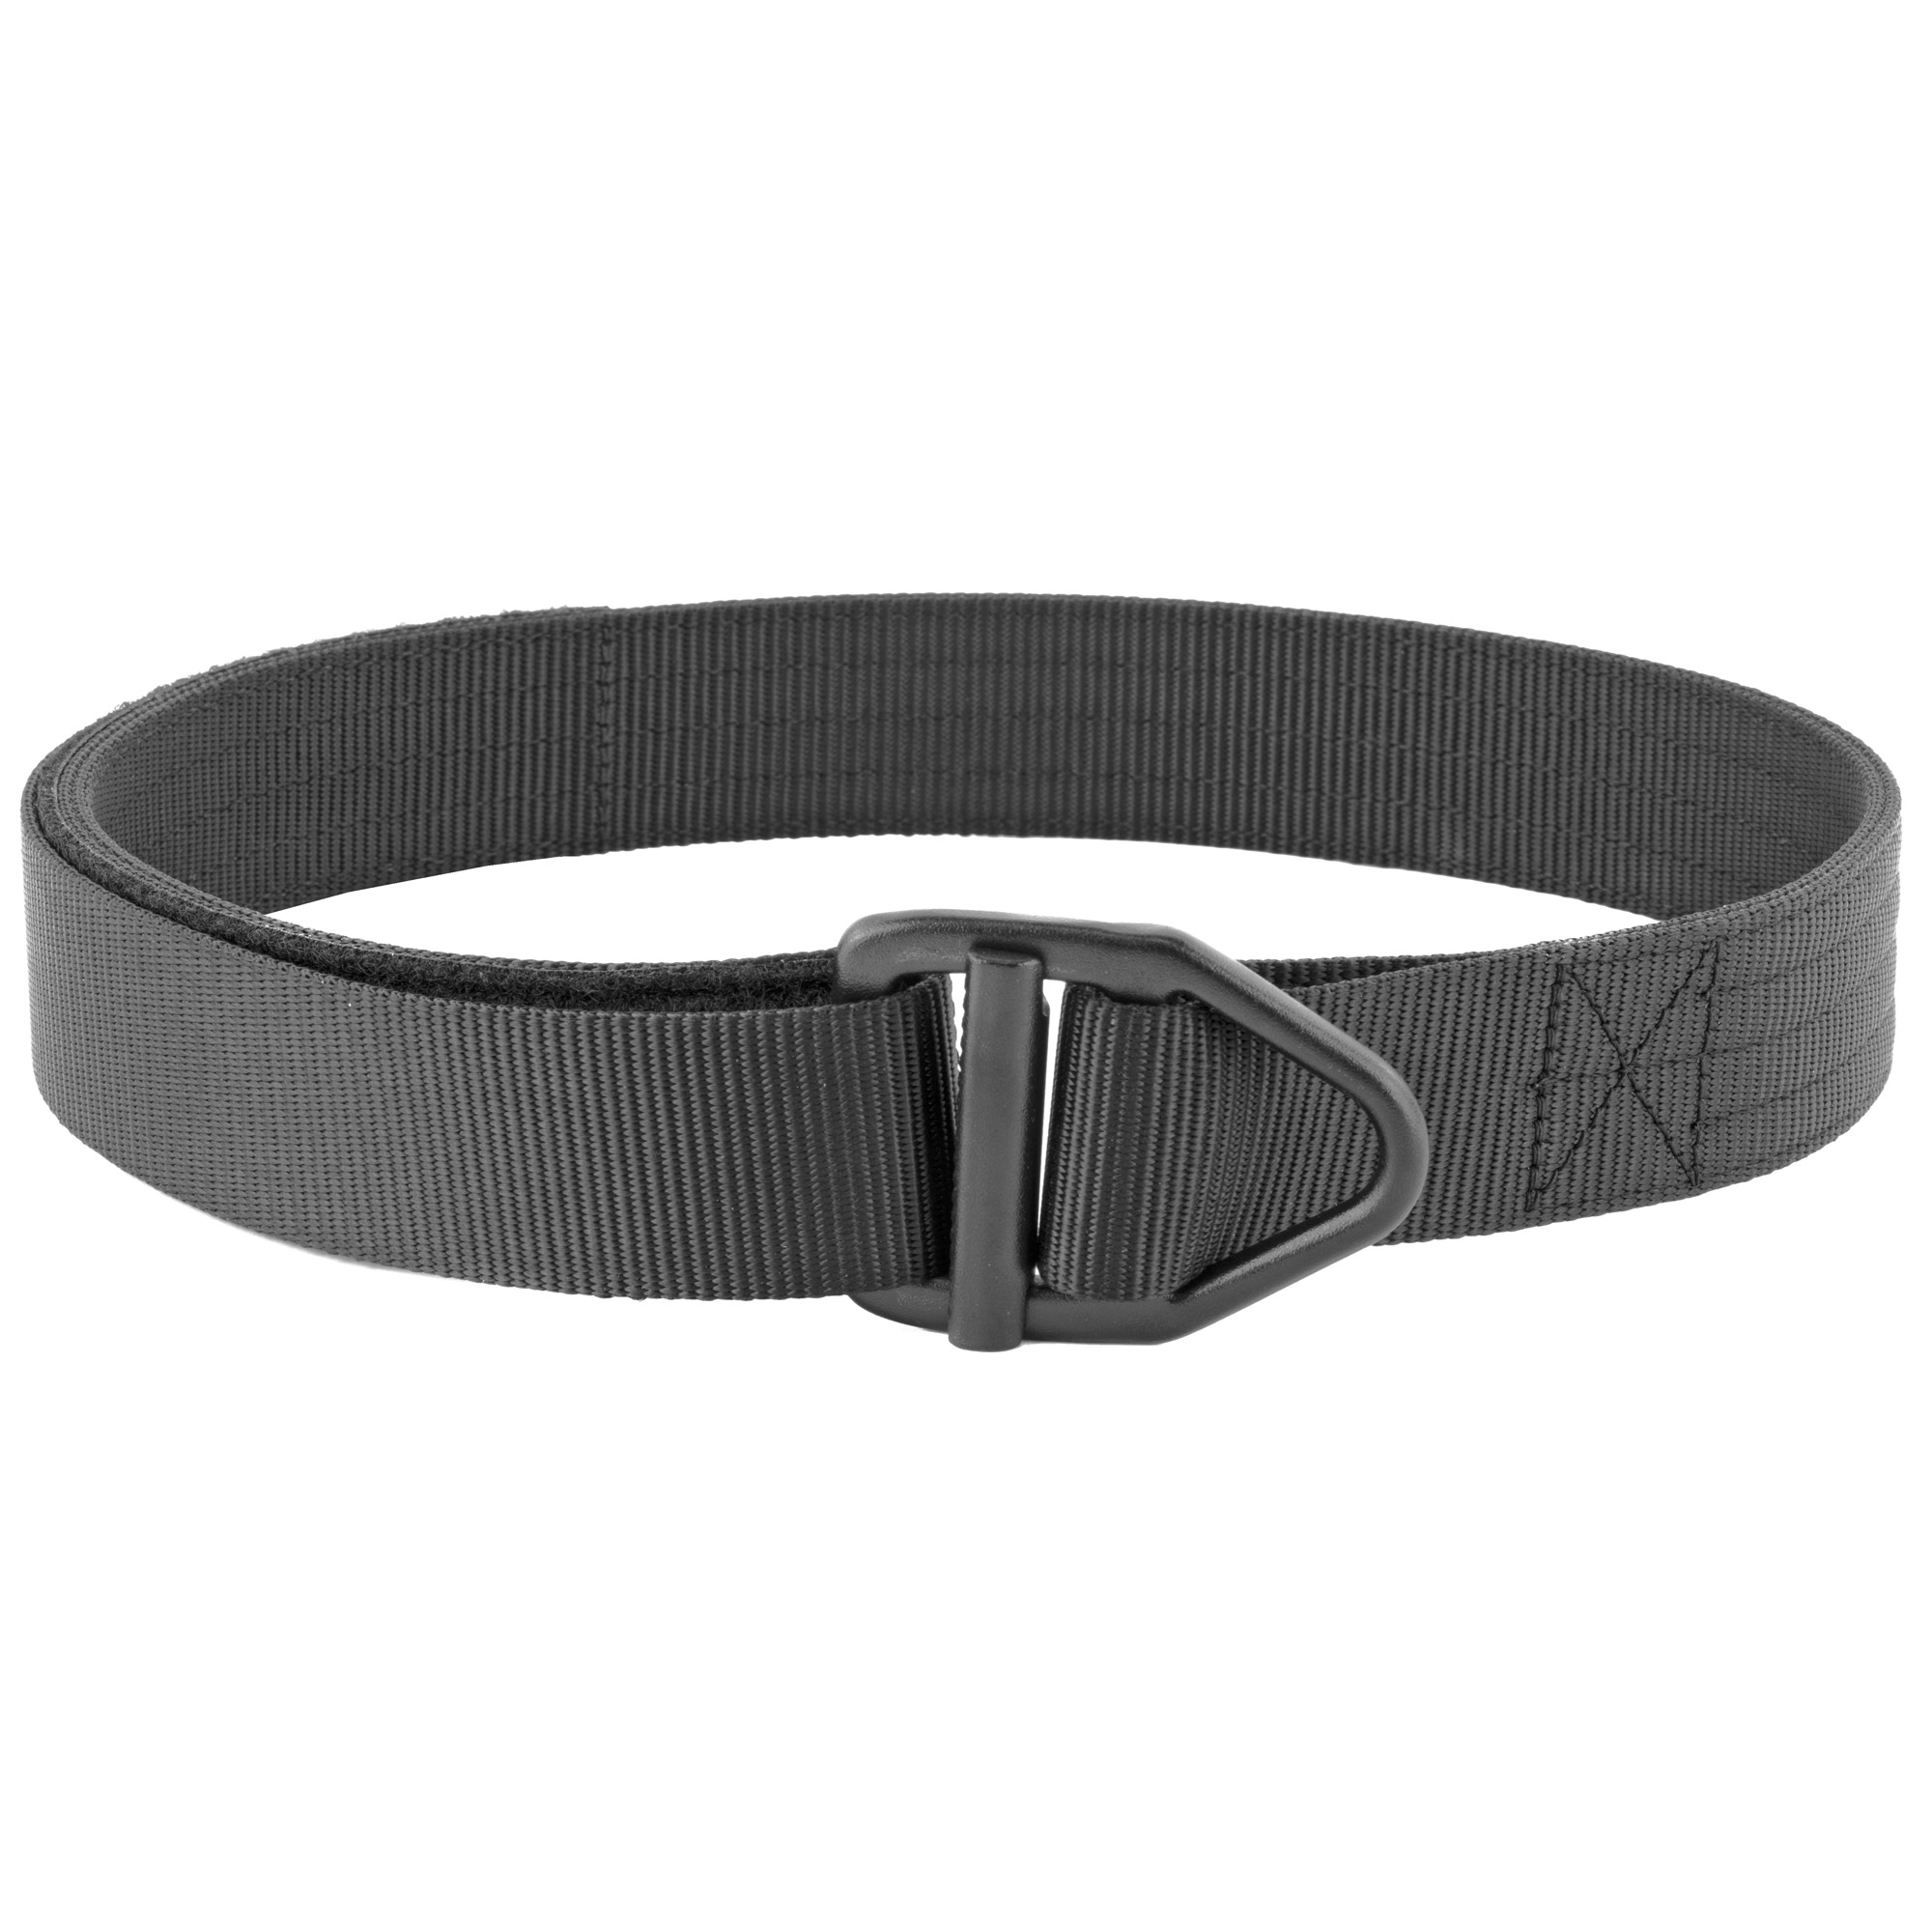 "Galco Instructor Belt 1 1/2"" Blk Med"